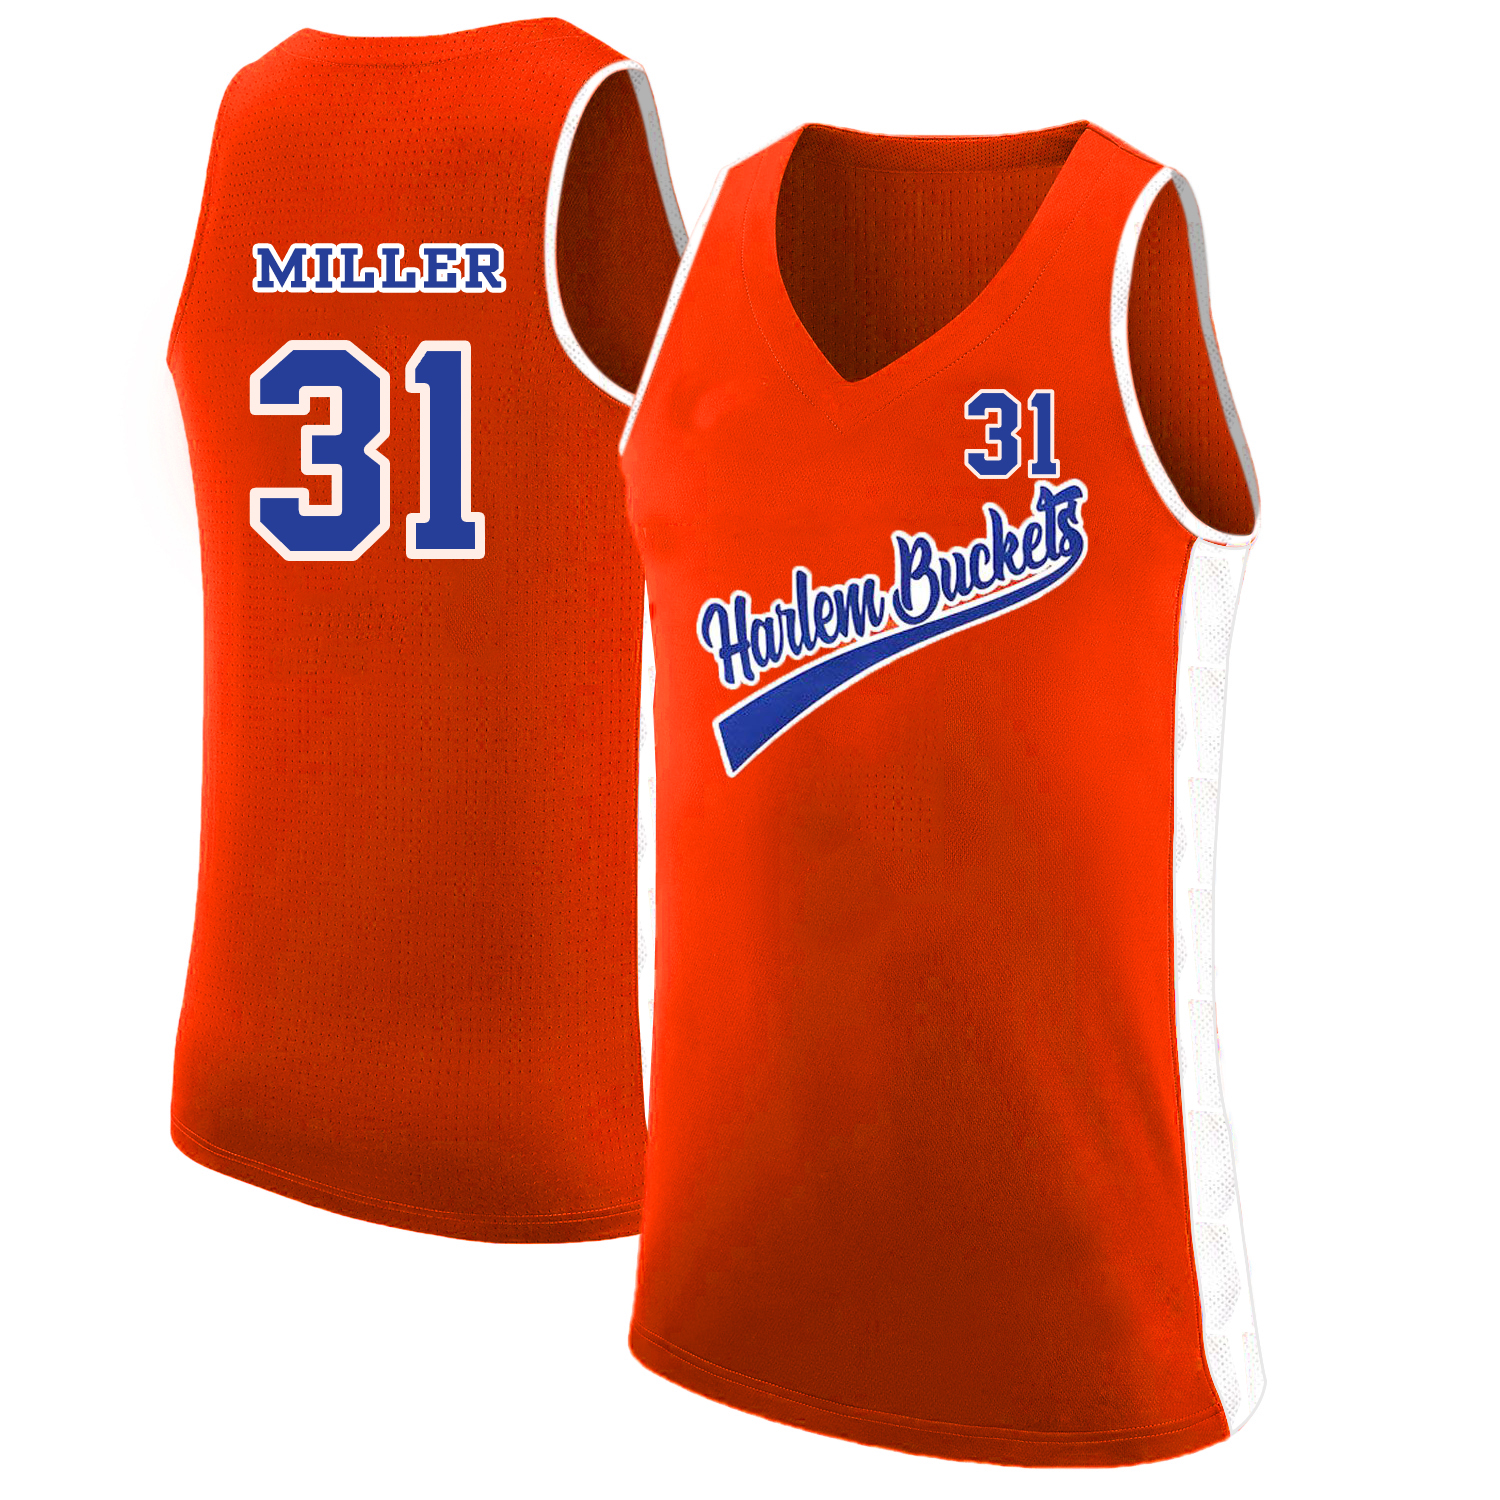 Harlem Buckets 31 Reggie Miller Orange Uncle Drew Basketball Jersey